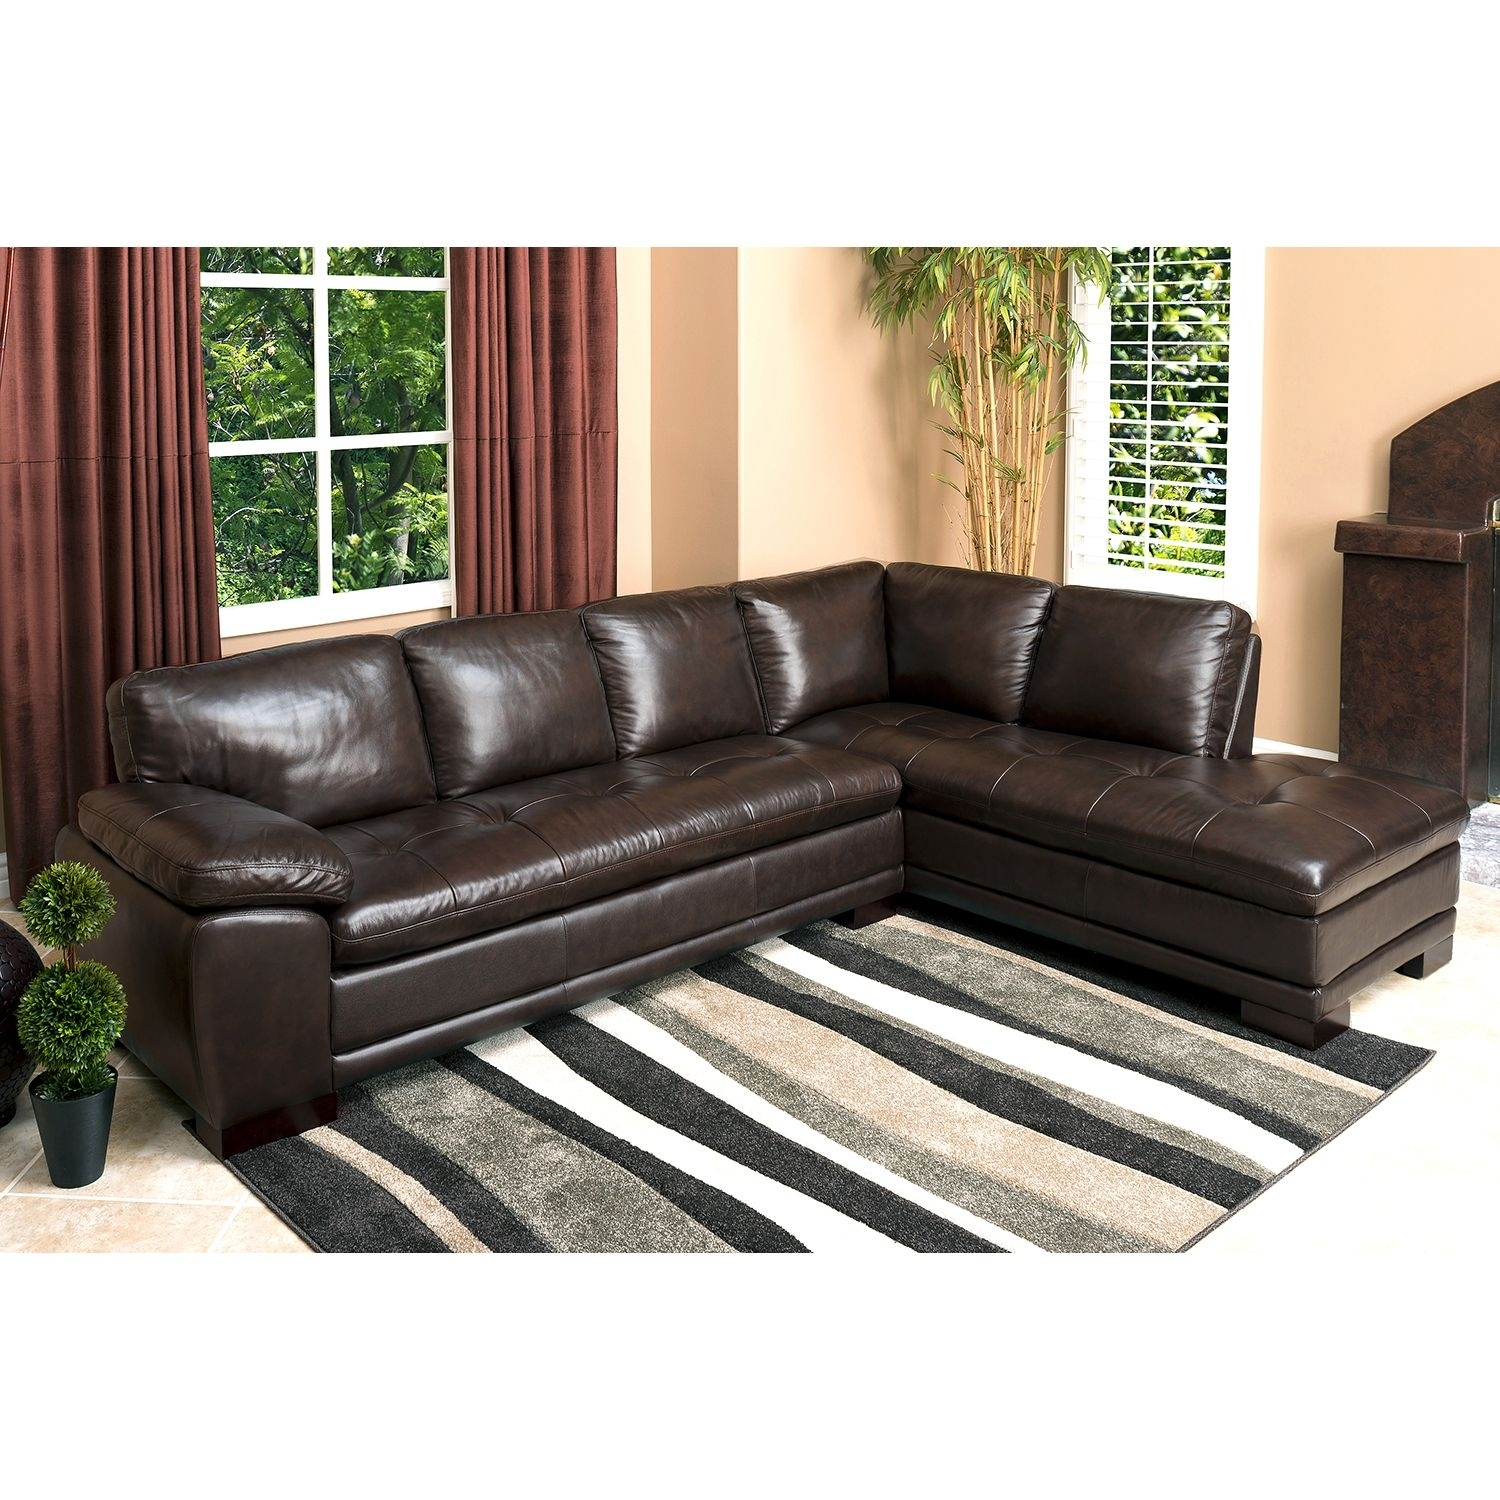 Westbury Top Grain Leather Sectional – Sam's Club | Sectionals With Regard To Sams Club Sectional Sofas (Image 10 of 10)